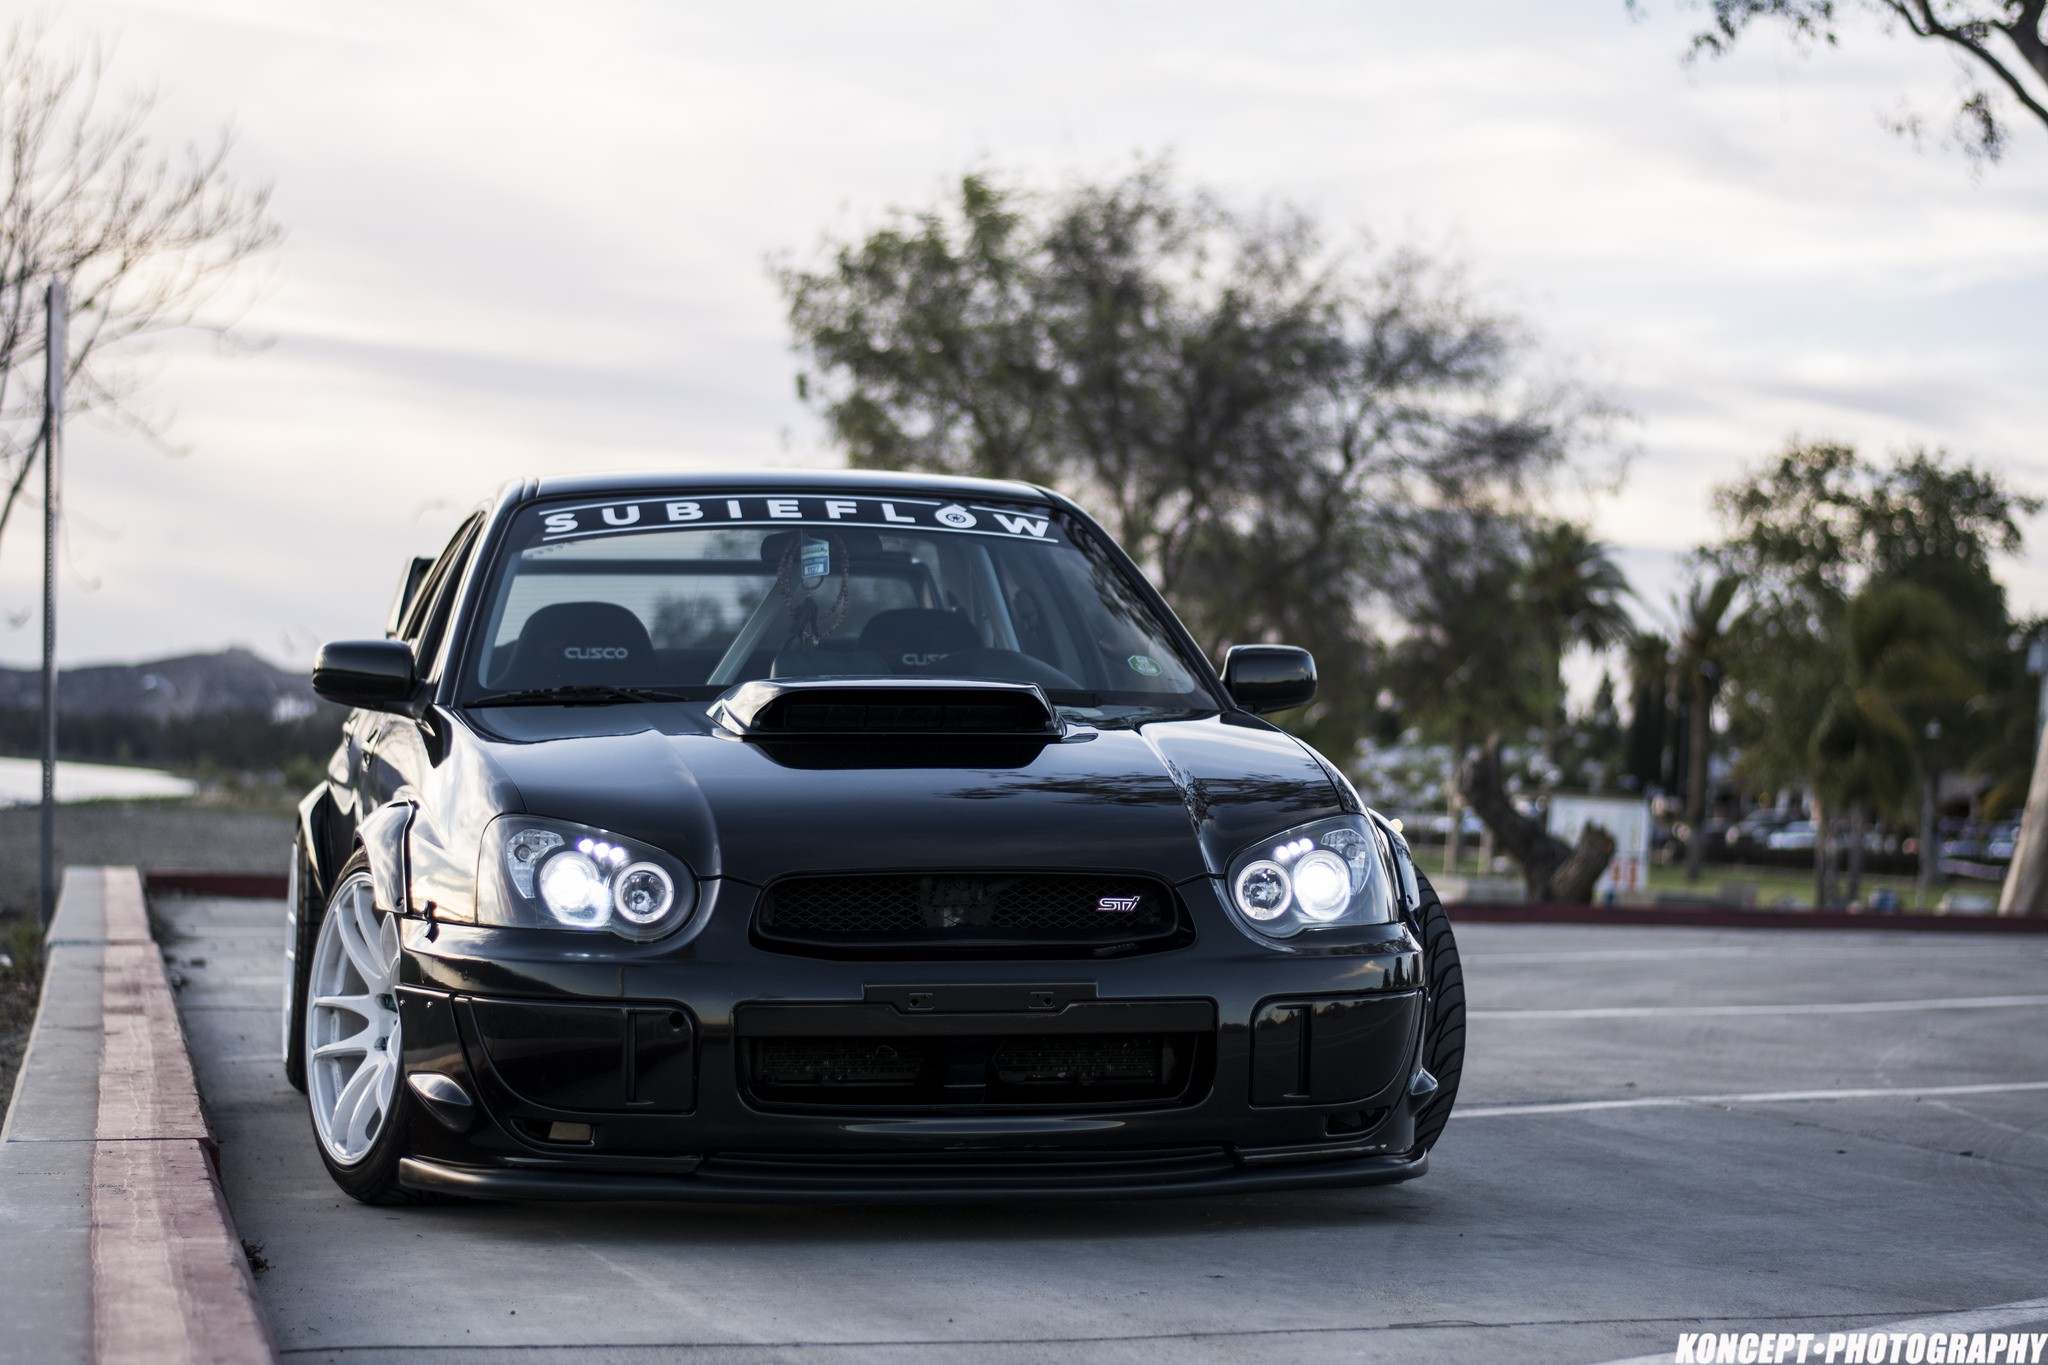 MPPSOCIETY __nickaaa__ Subaru STI Work Wheels 03